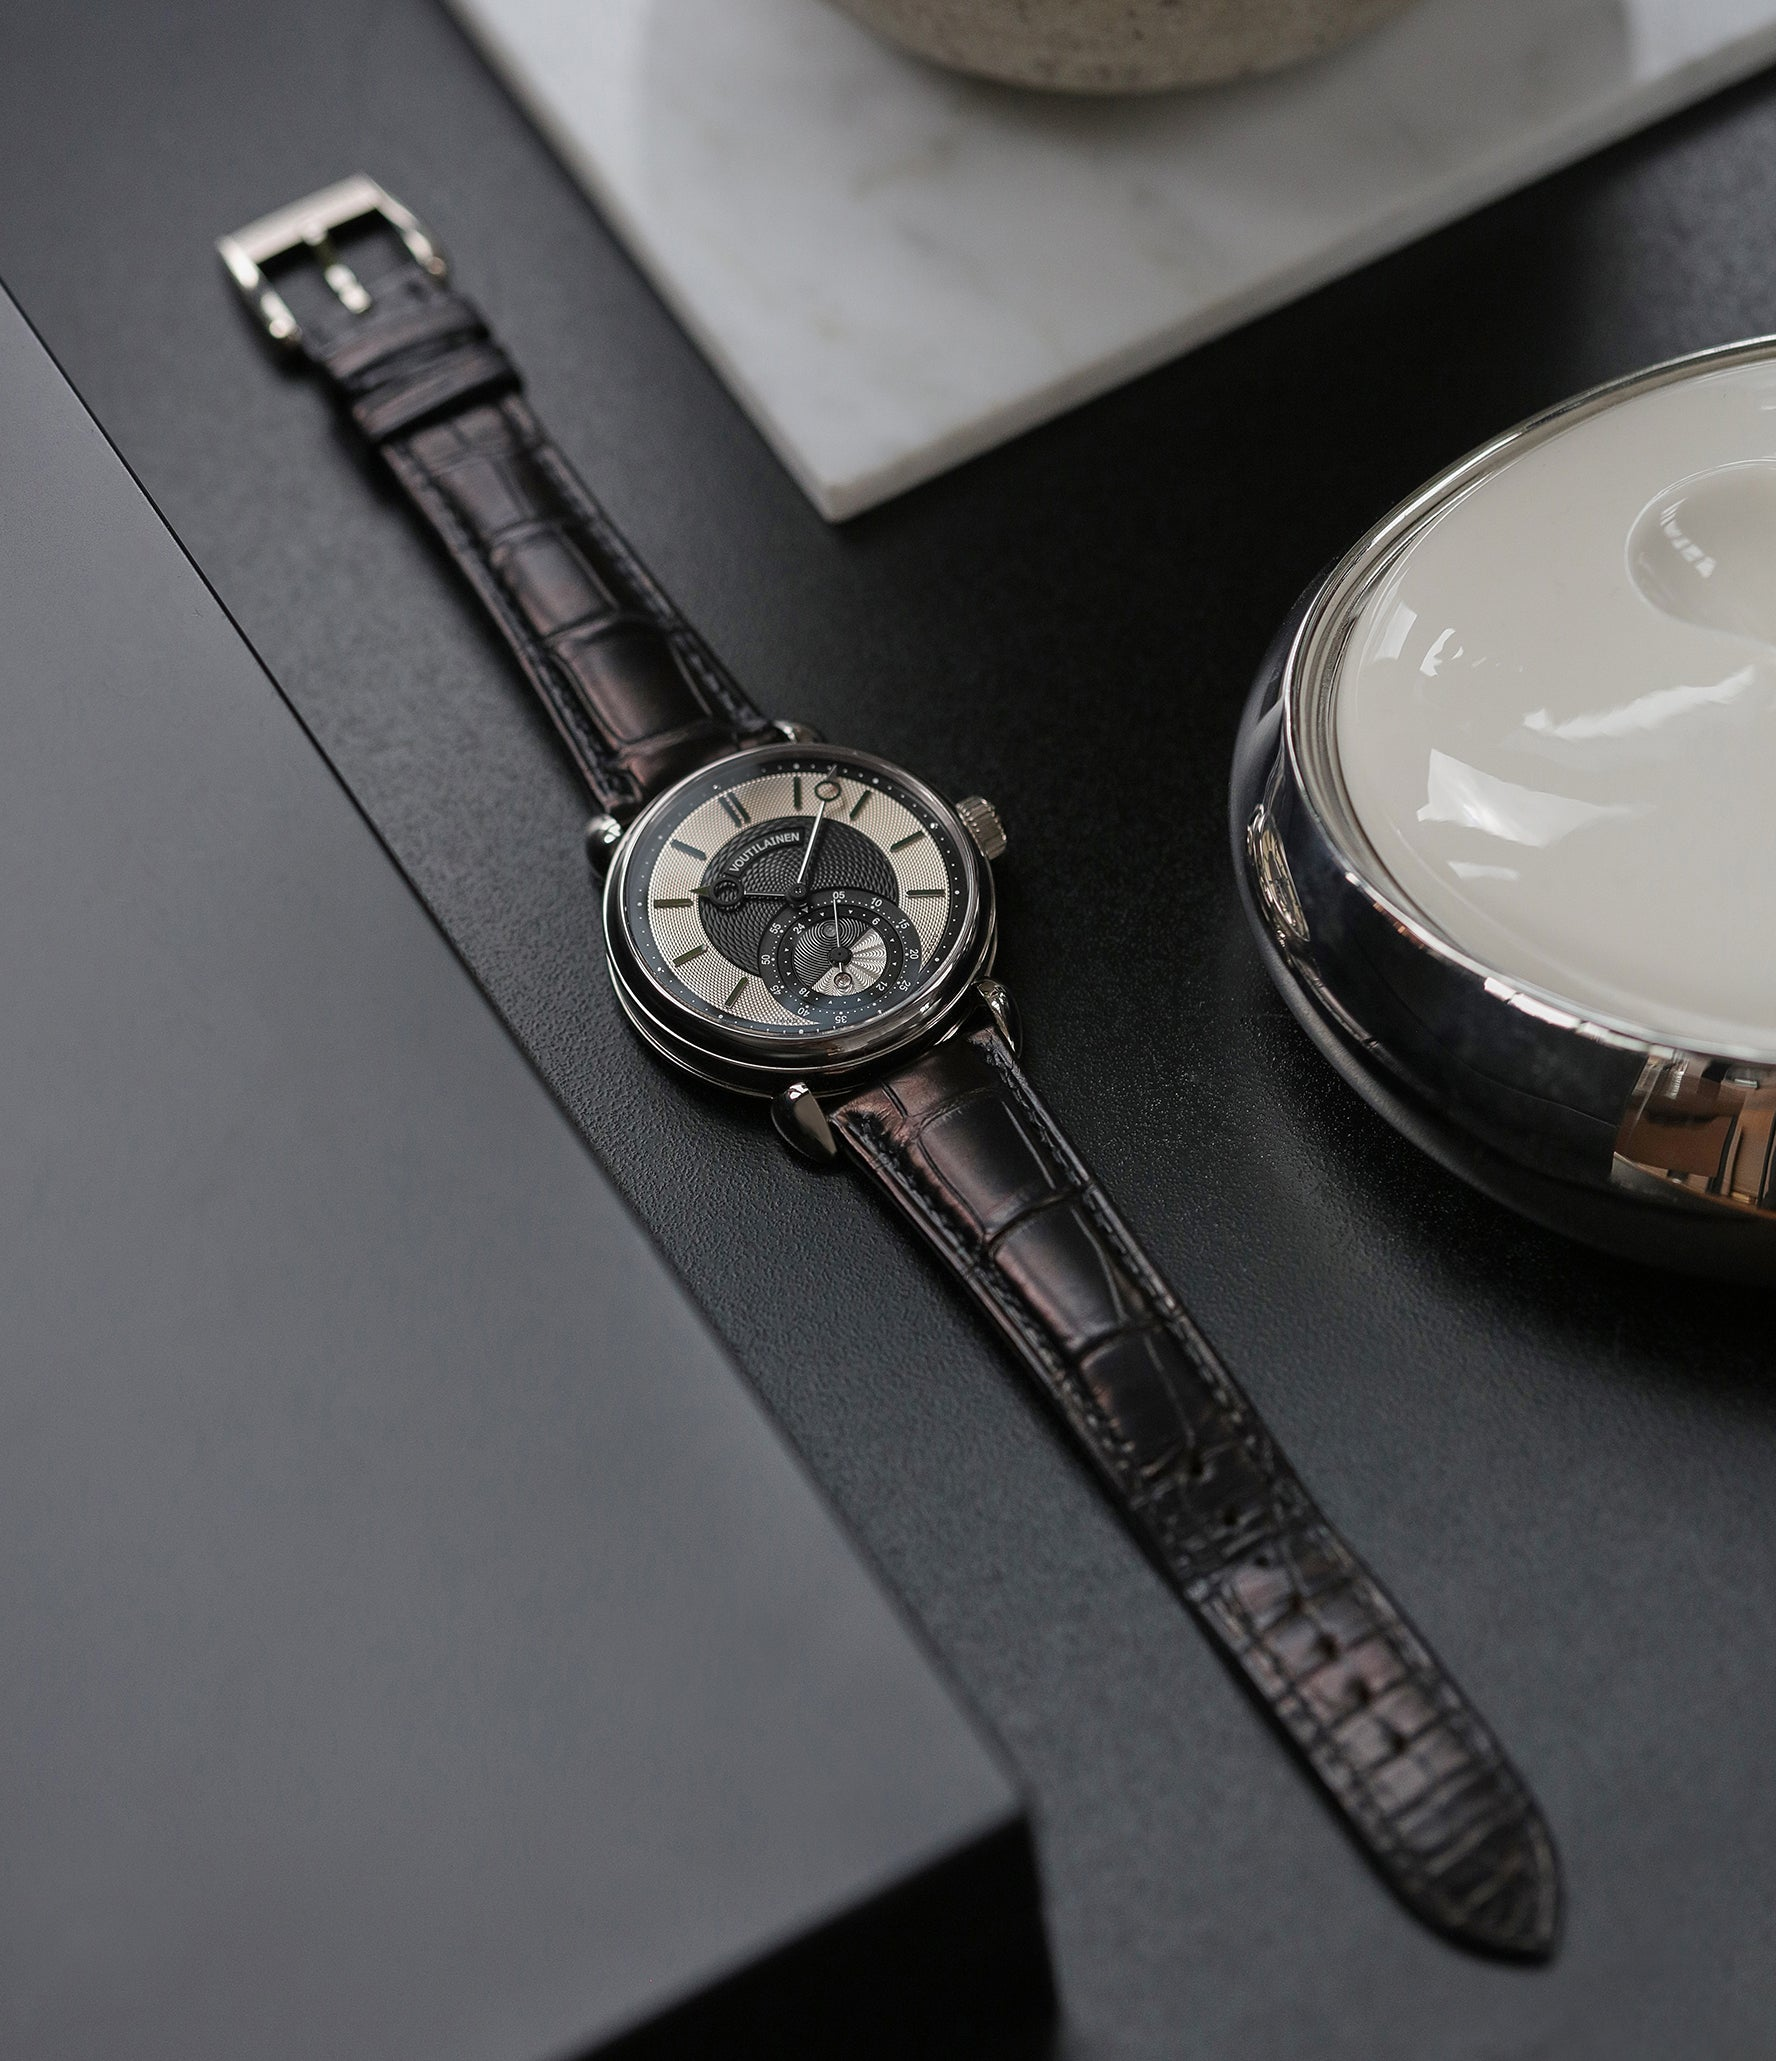 luxury dress watch for sale Kari Voutilainen GMT-6 two-tone dial white gold rare hand-made watch from independent watchmaker for sale online at A Collected Man London UK specialist of rare watches